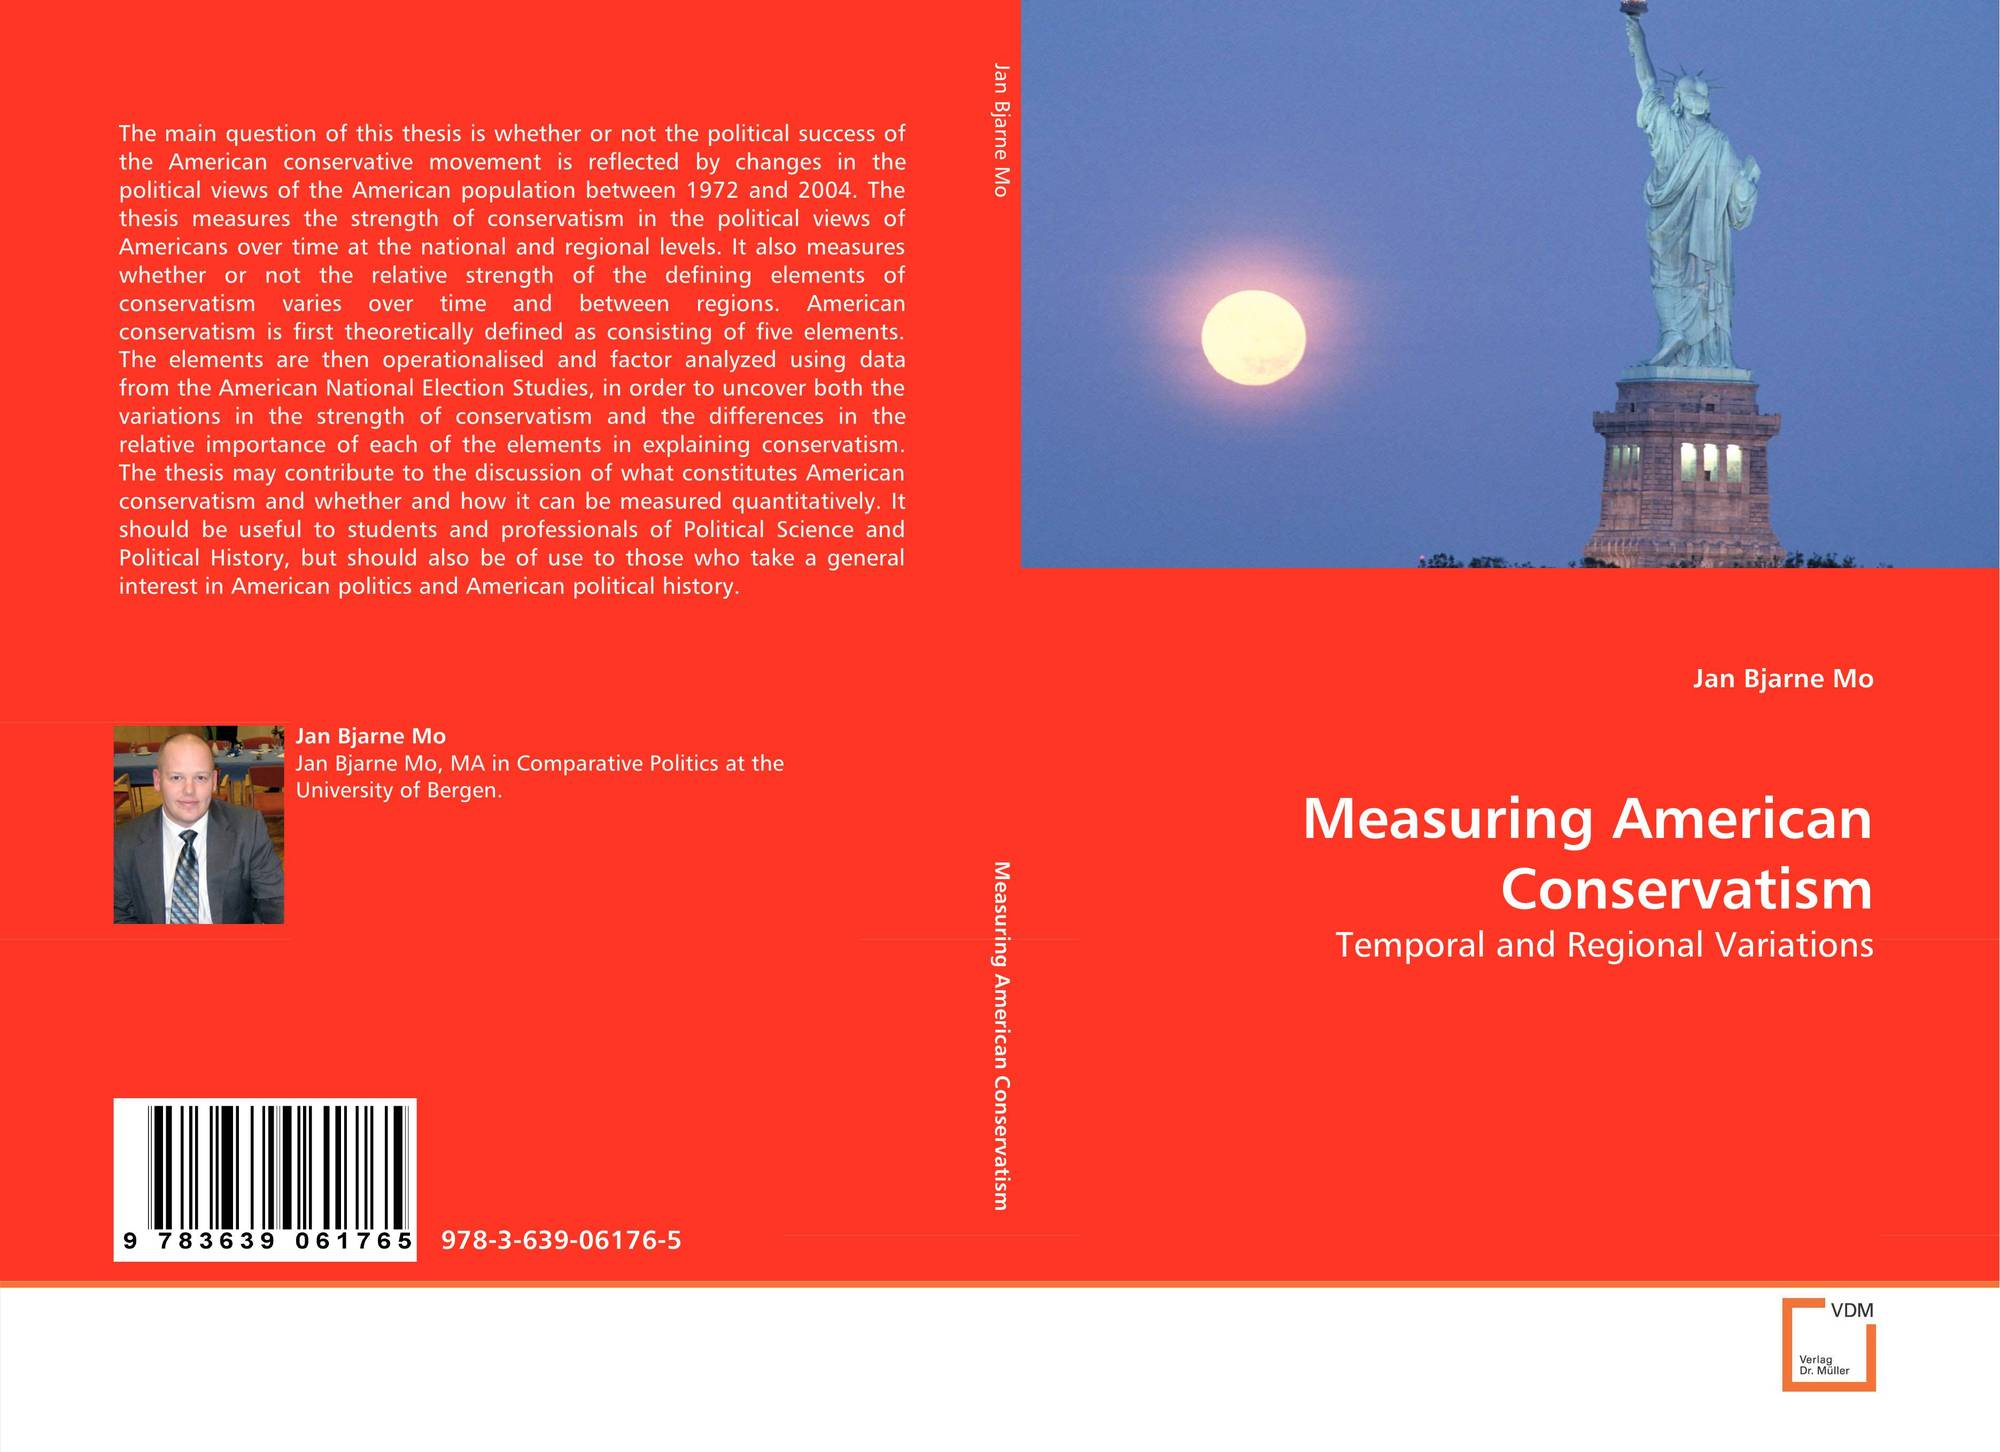 an analysis of conservatism in the american politics Is political conservatism a mild form of insanity a meta-analysis culled from 88 samples in 12 countries  american political science review, 52.